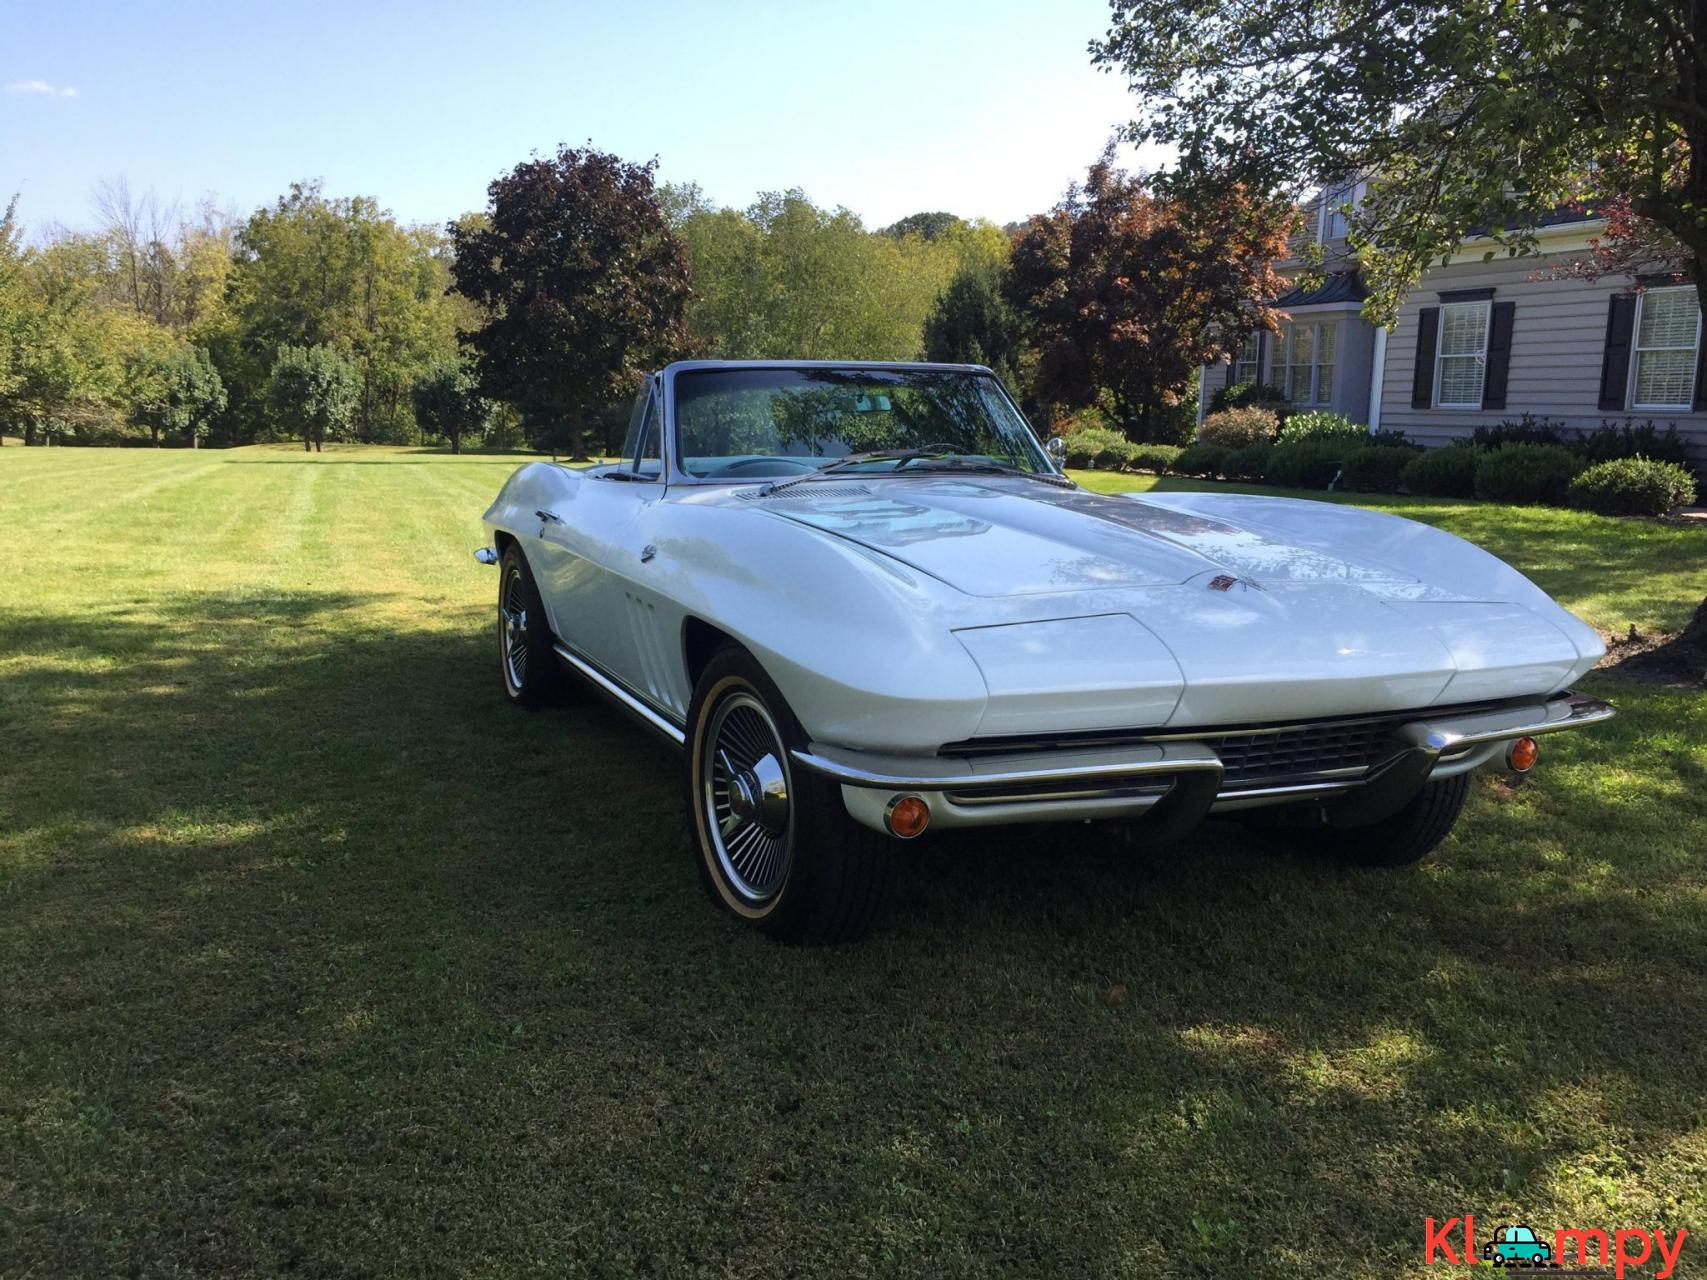 1965 Chevrolet Corvette 327 Convertible V8 - 1/20